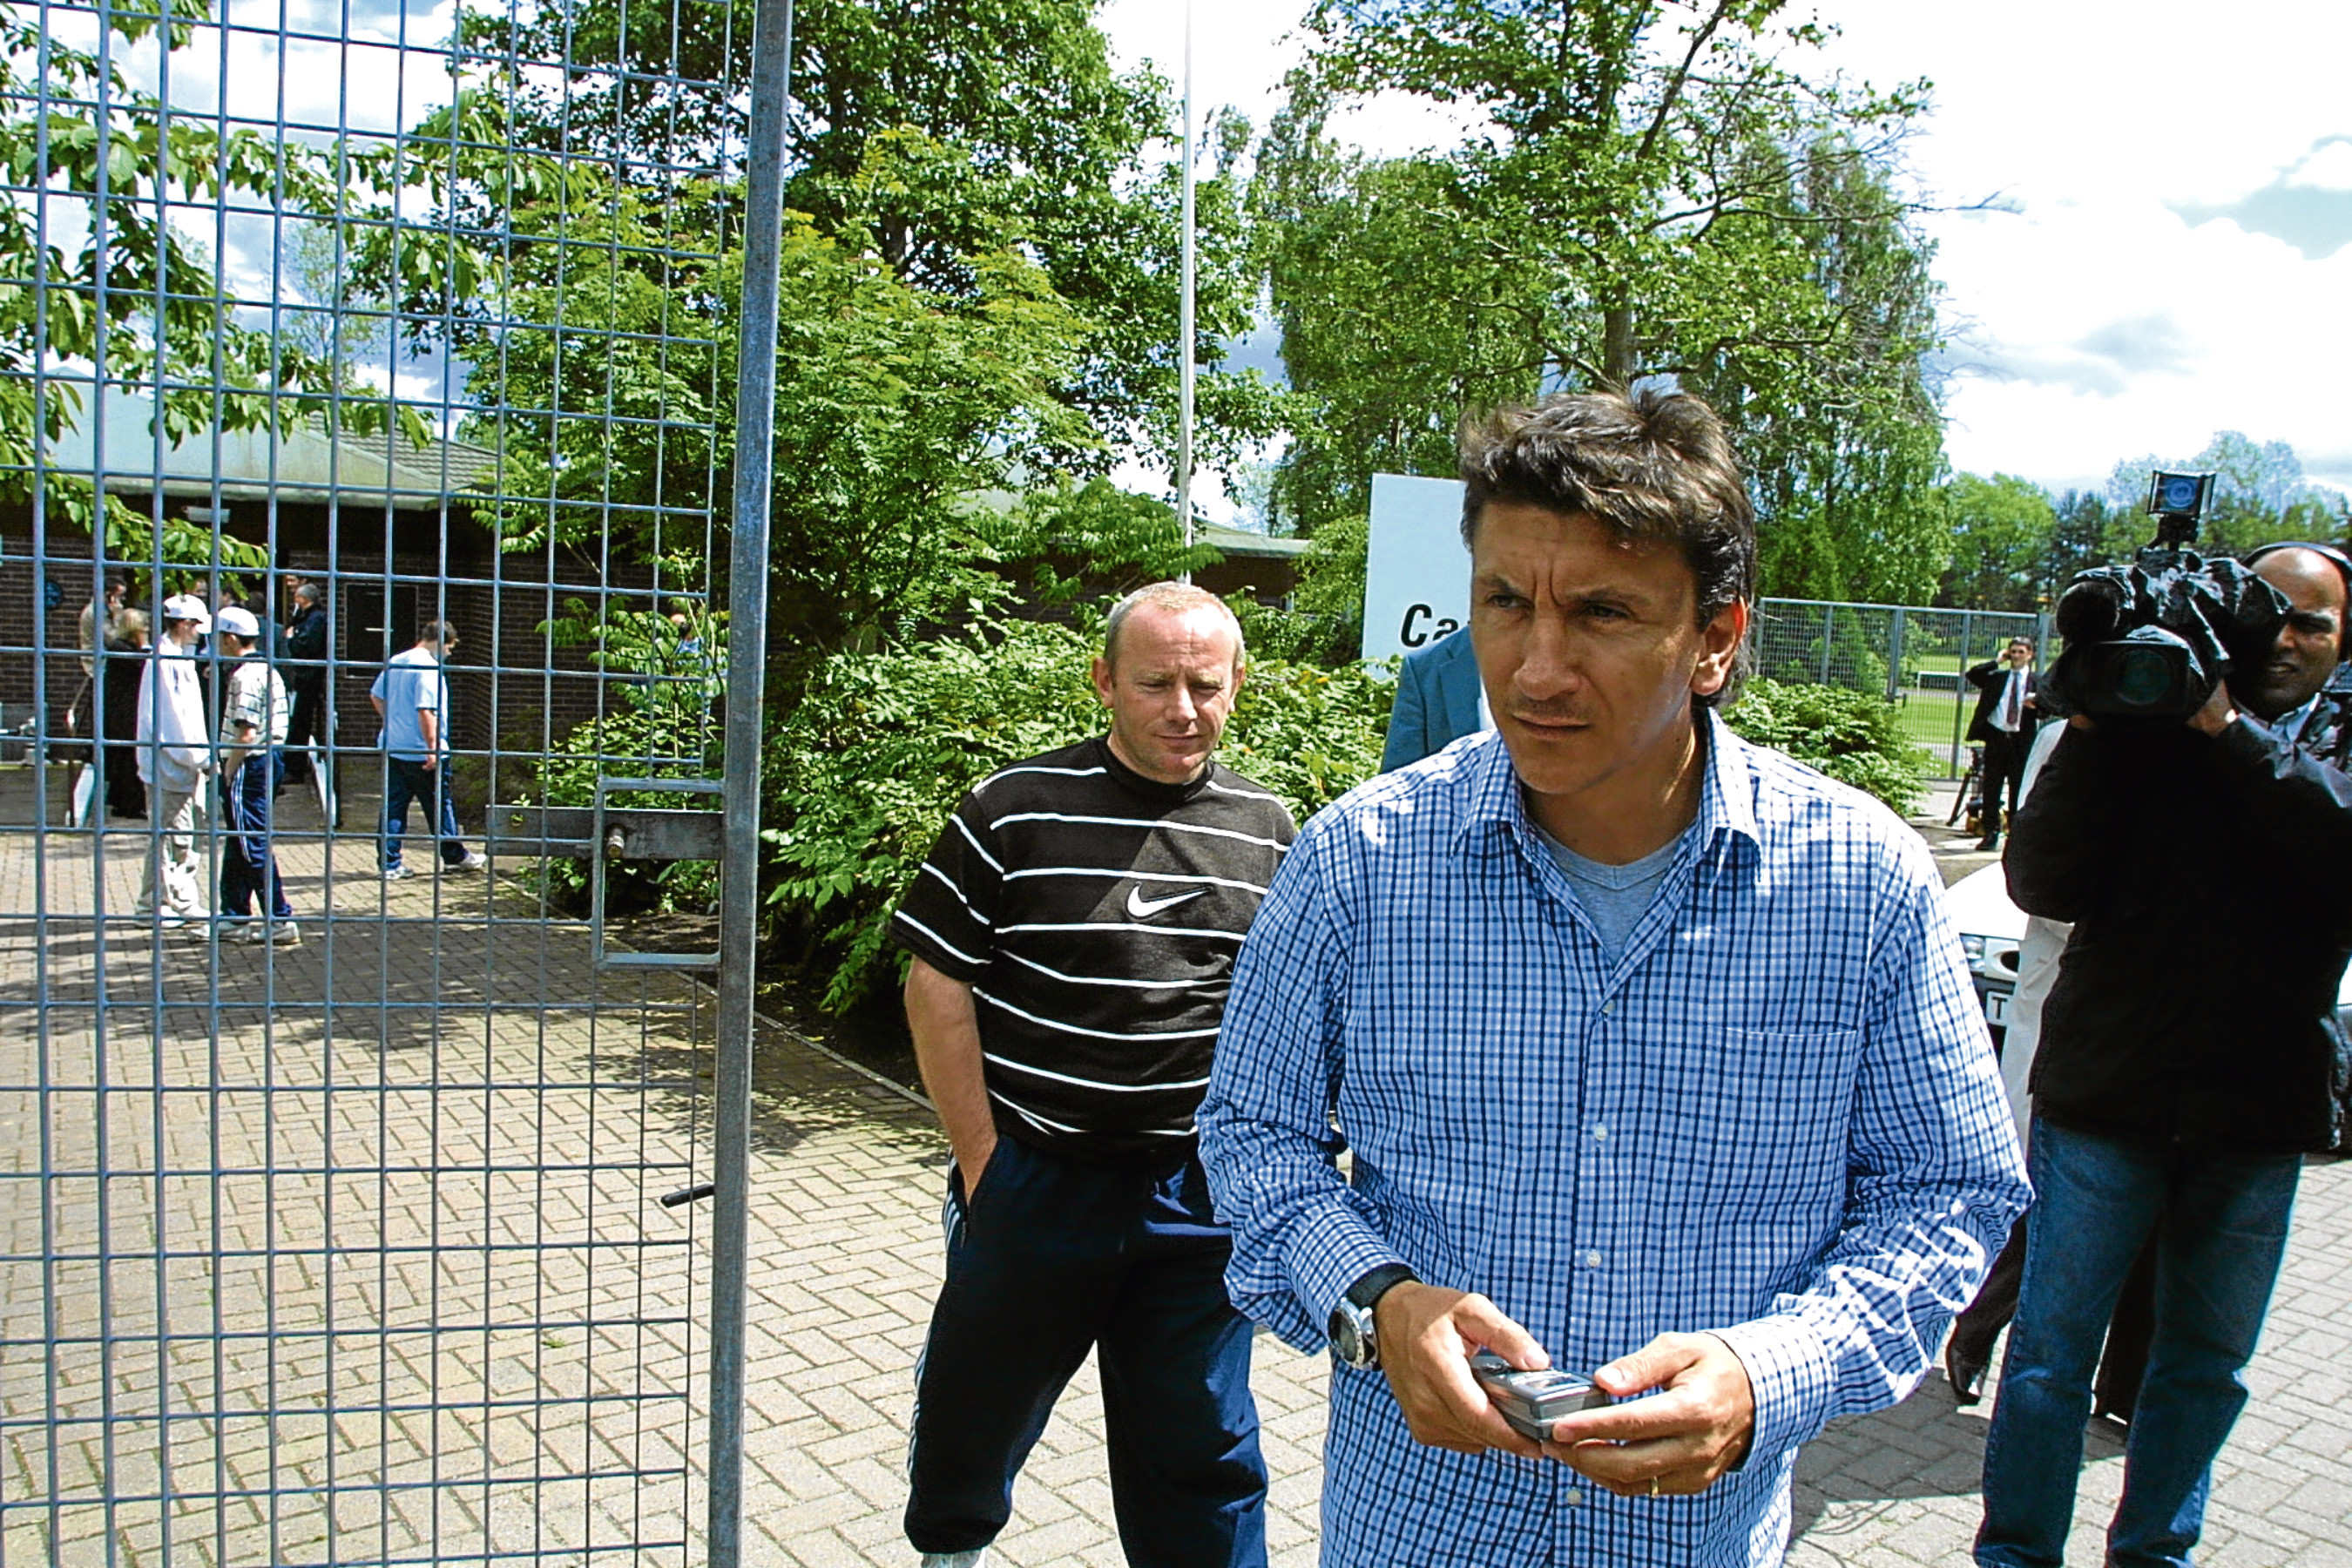 Ivano Bonetti exits the first day back at training after the summer break at Caird Park in 2002.